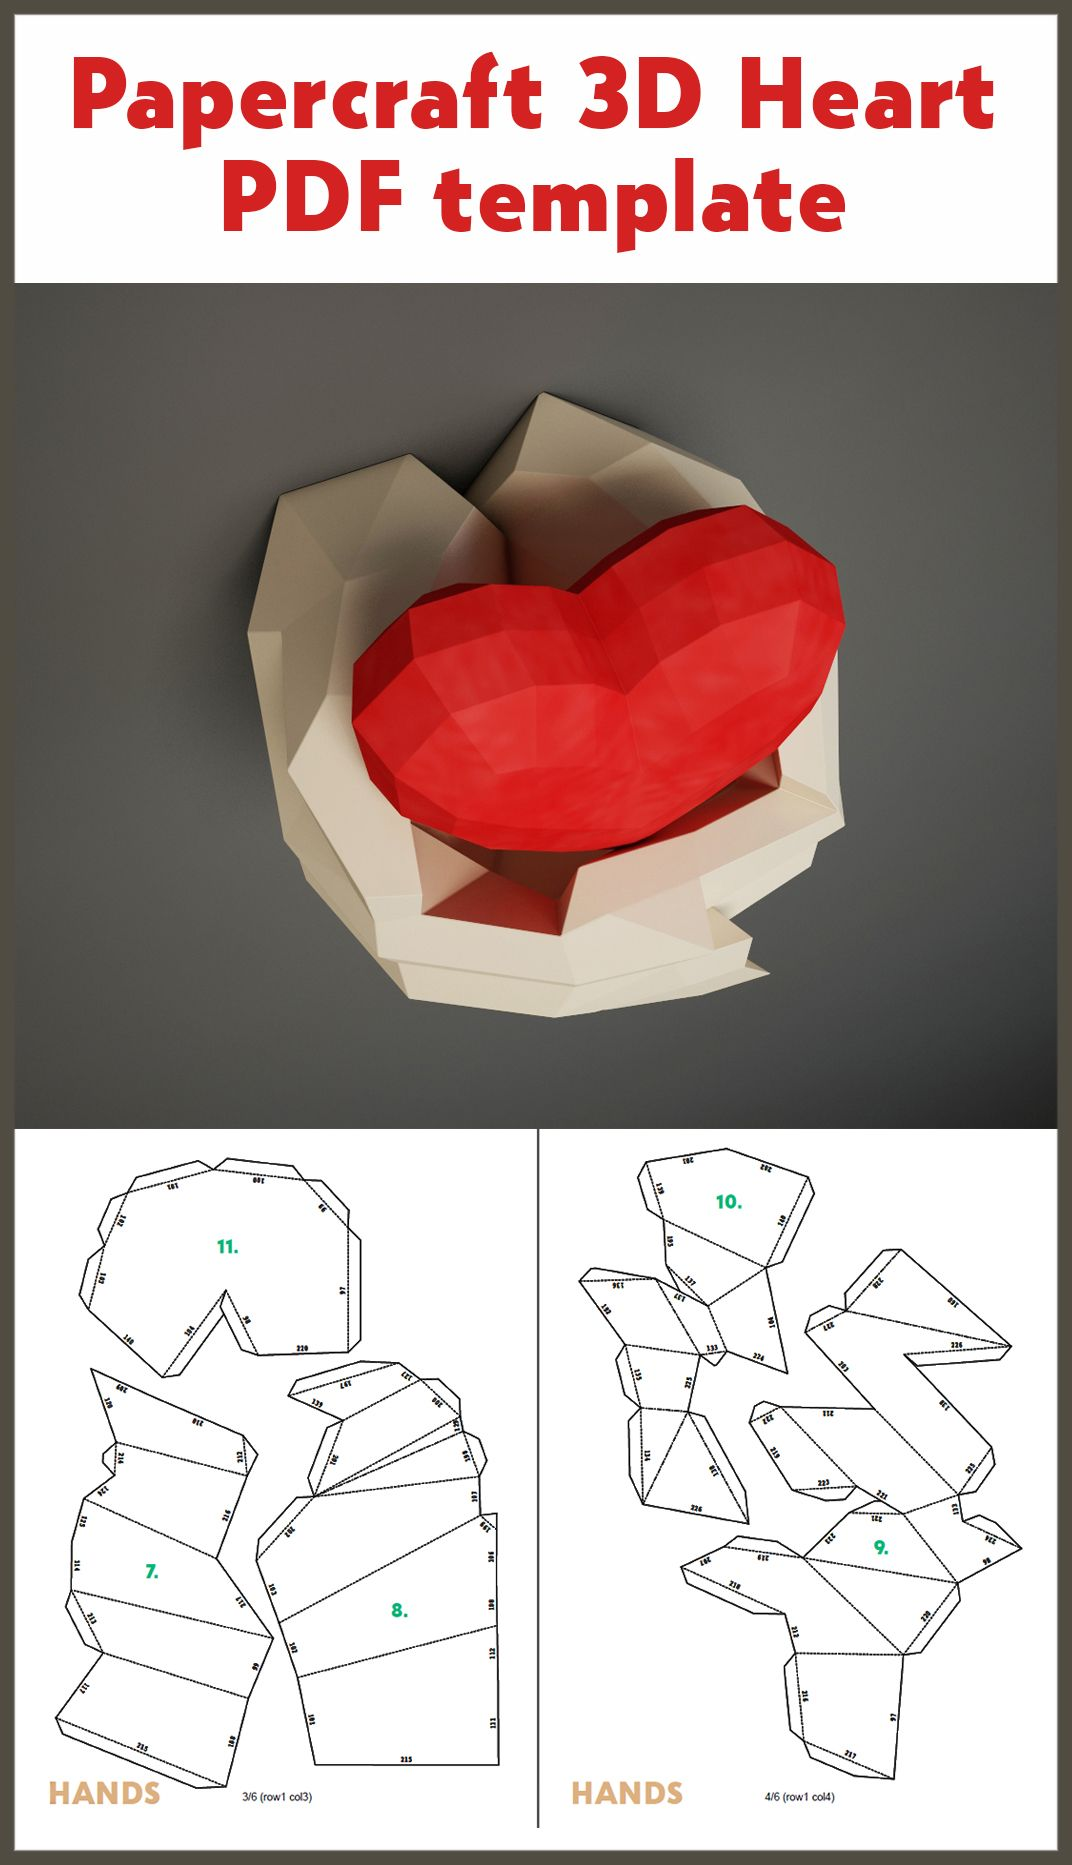 Paper Craft Hands With Heart Papercraft 3d Wall Decor Diy Gift Love Valentines Day Paper Model Sculpture Pdf Template Kit Pepakura Paper Crafts Pop Up Card Templates Paper Crafts Diy